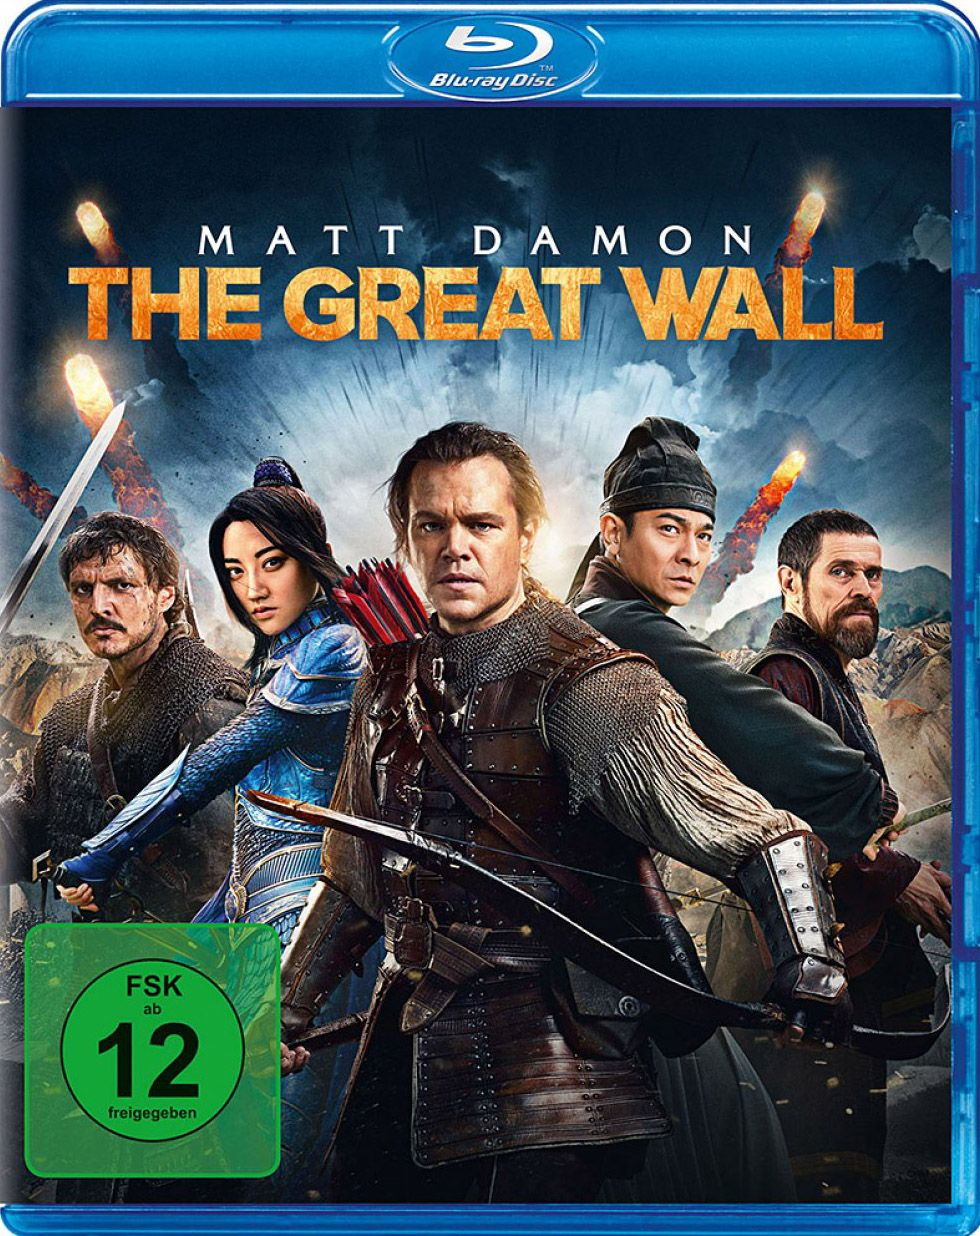 Great Wall, The (BLURAY)